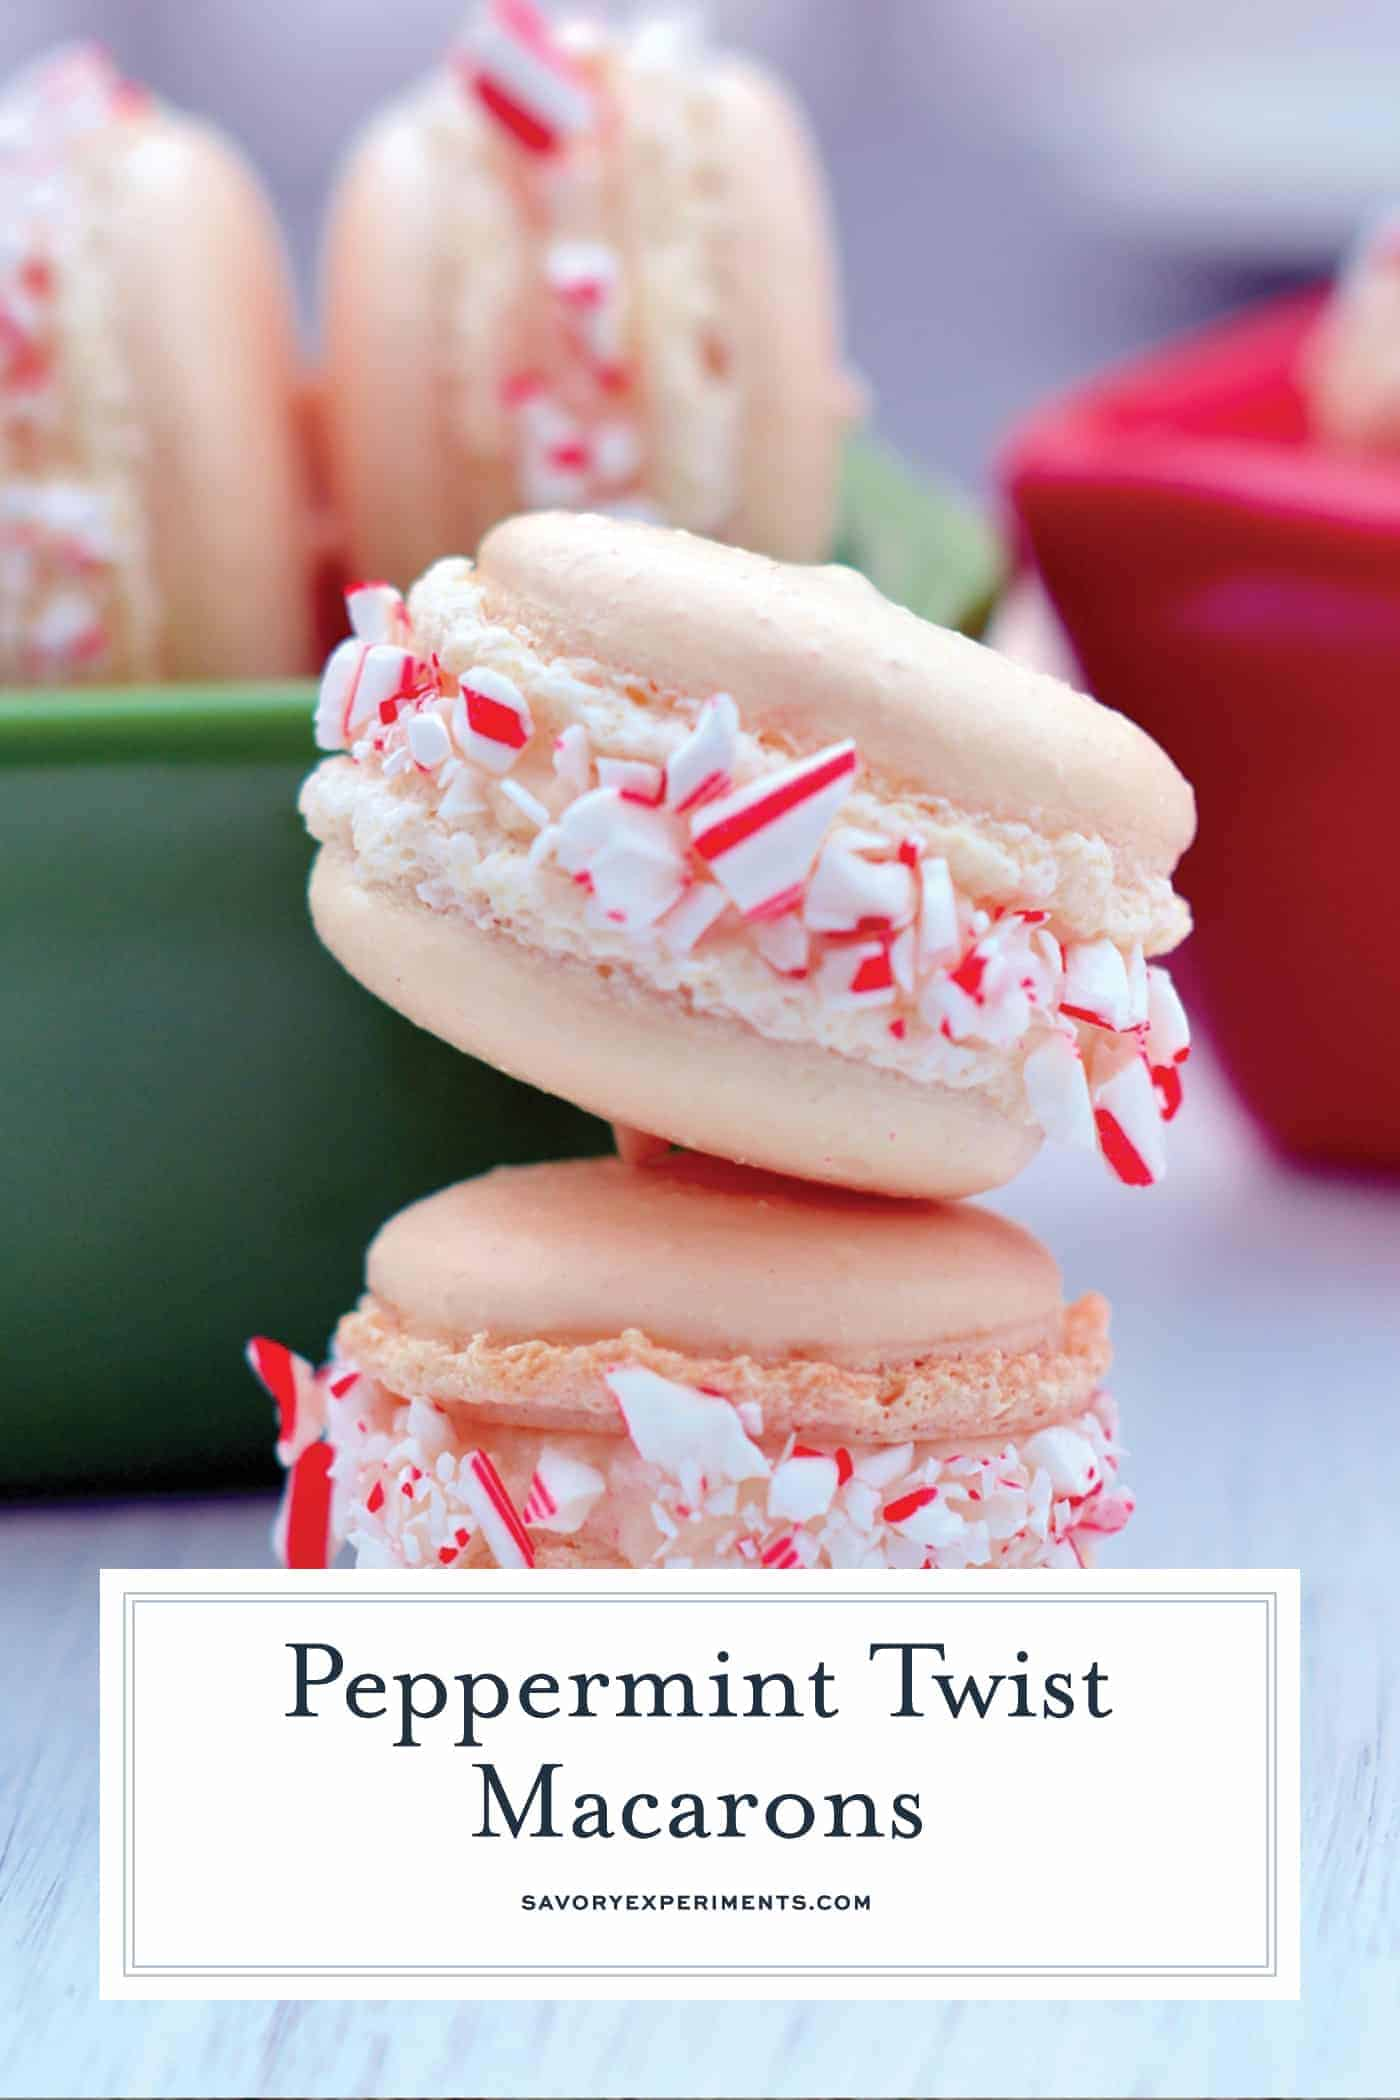 Peppermint Twist Macarons are an easy macaron recipe with a buttercream filling. Perfect recette macarons for Christmas cookies and holiday parties.#easymacaronrecipe #christmascookies www.savoryexperiments.com